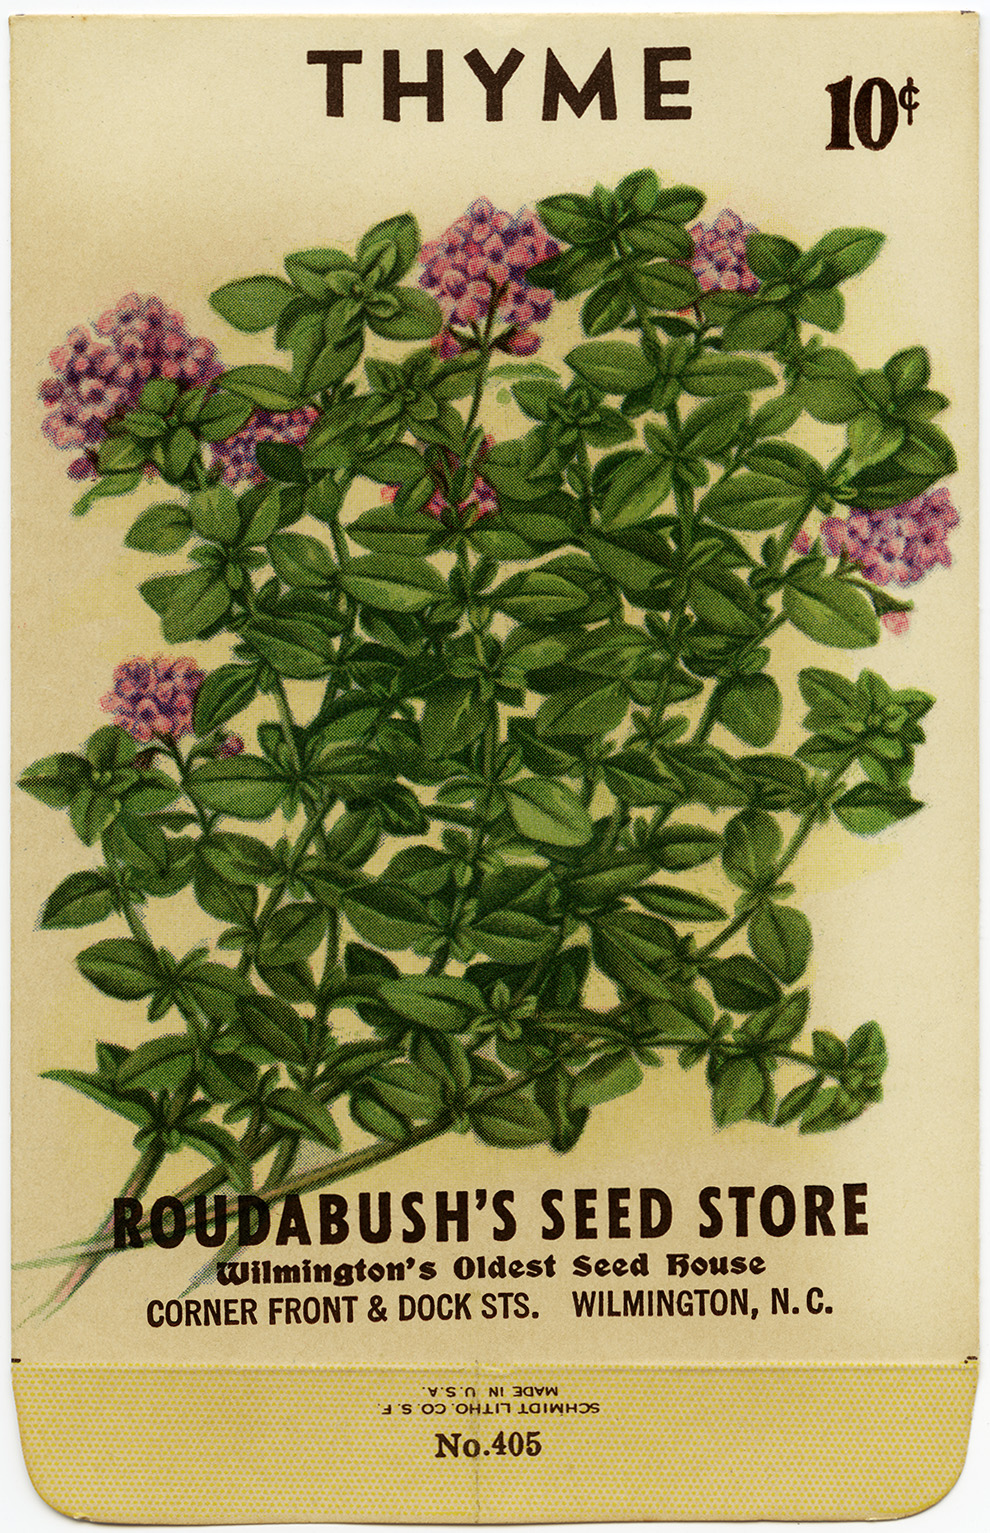 Free Vintage Image Thyme Seed Packet Old Design Shop Blog